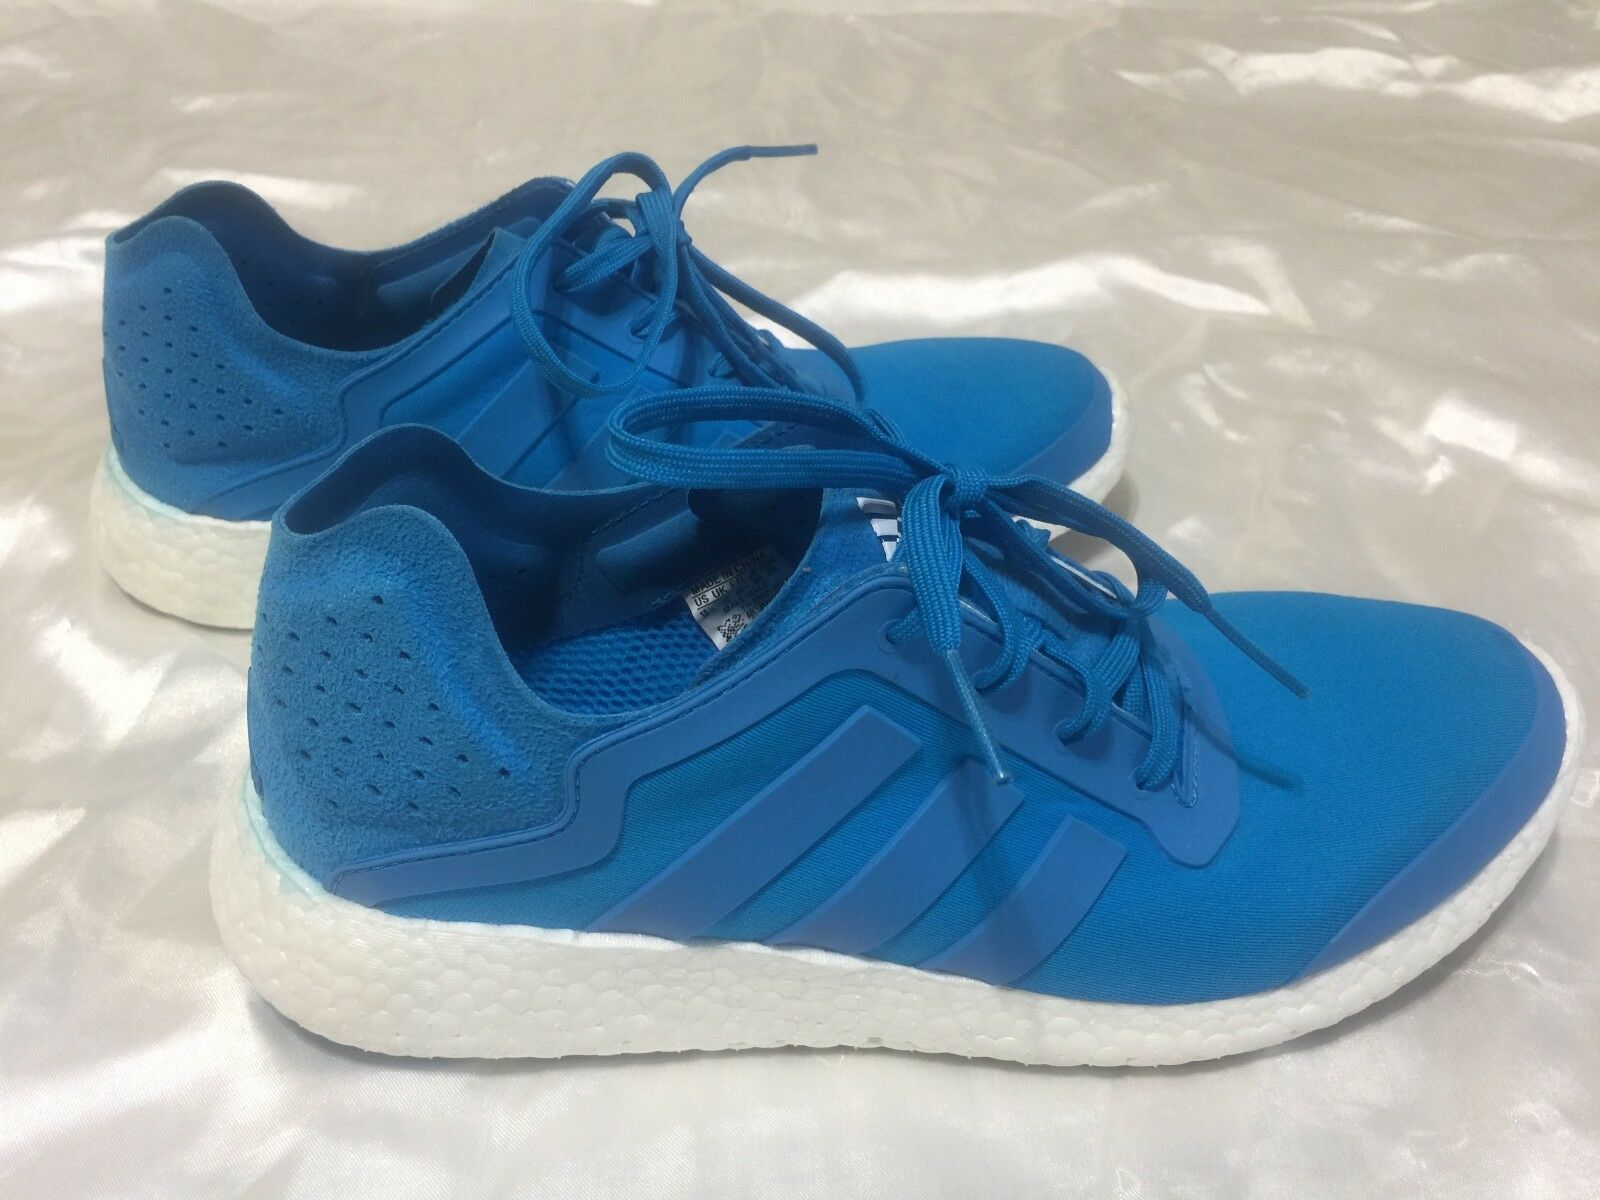 Adidas Pure Boost Solstice bluee White Soles - Nice Condition - Men's 10.5